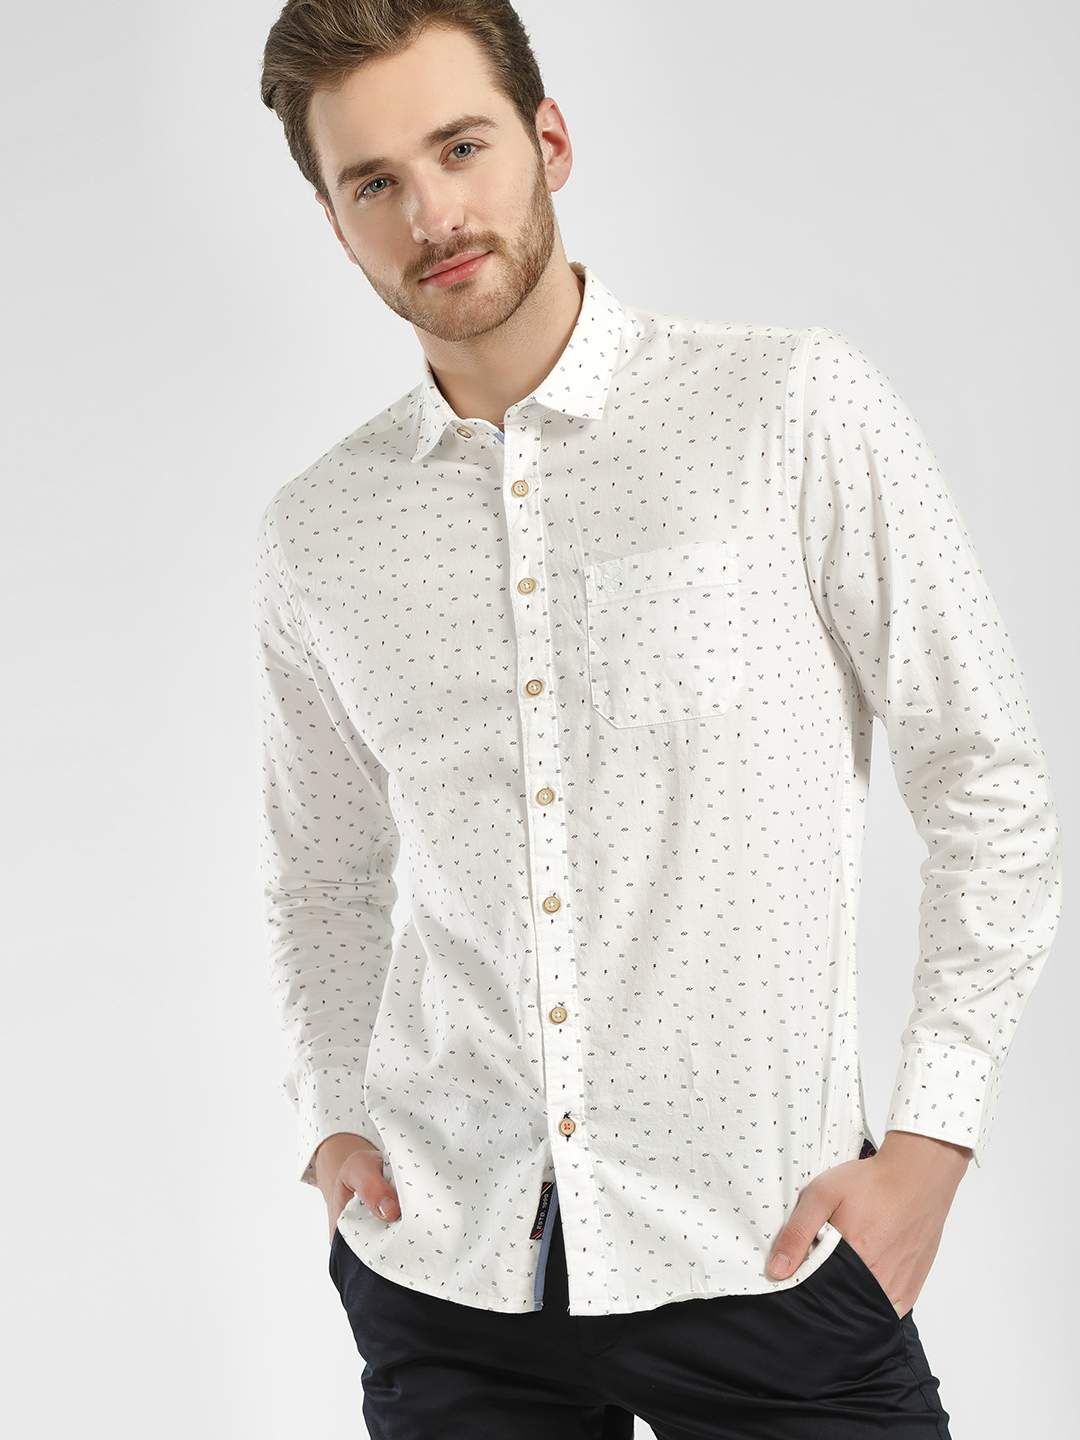 SCULLERS White All Over Print Casual Shirt 1